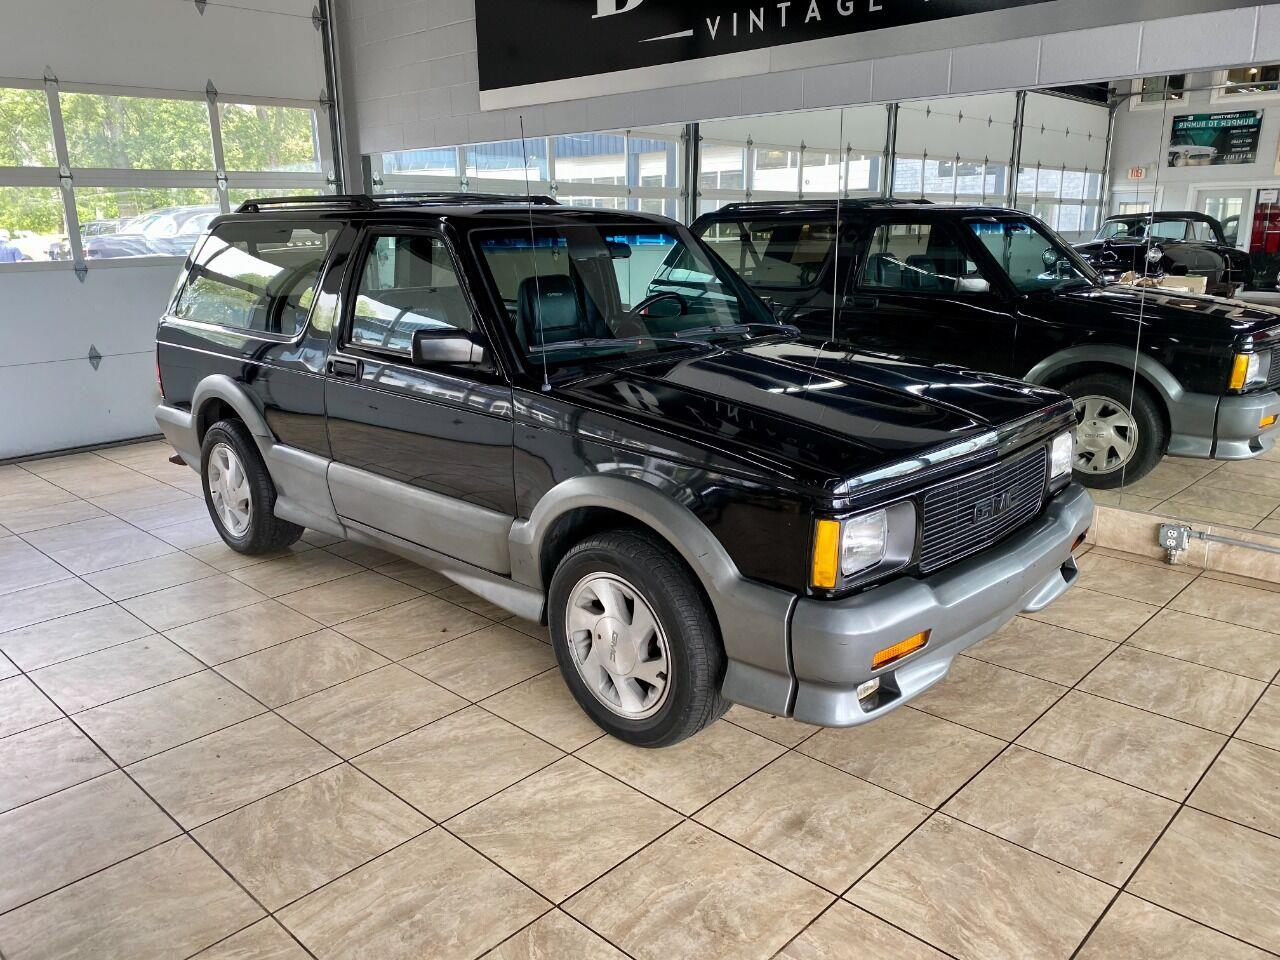 for sale 1992 gmc typhoon in st. charles, illinois cars - saint charles, il at geebo